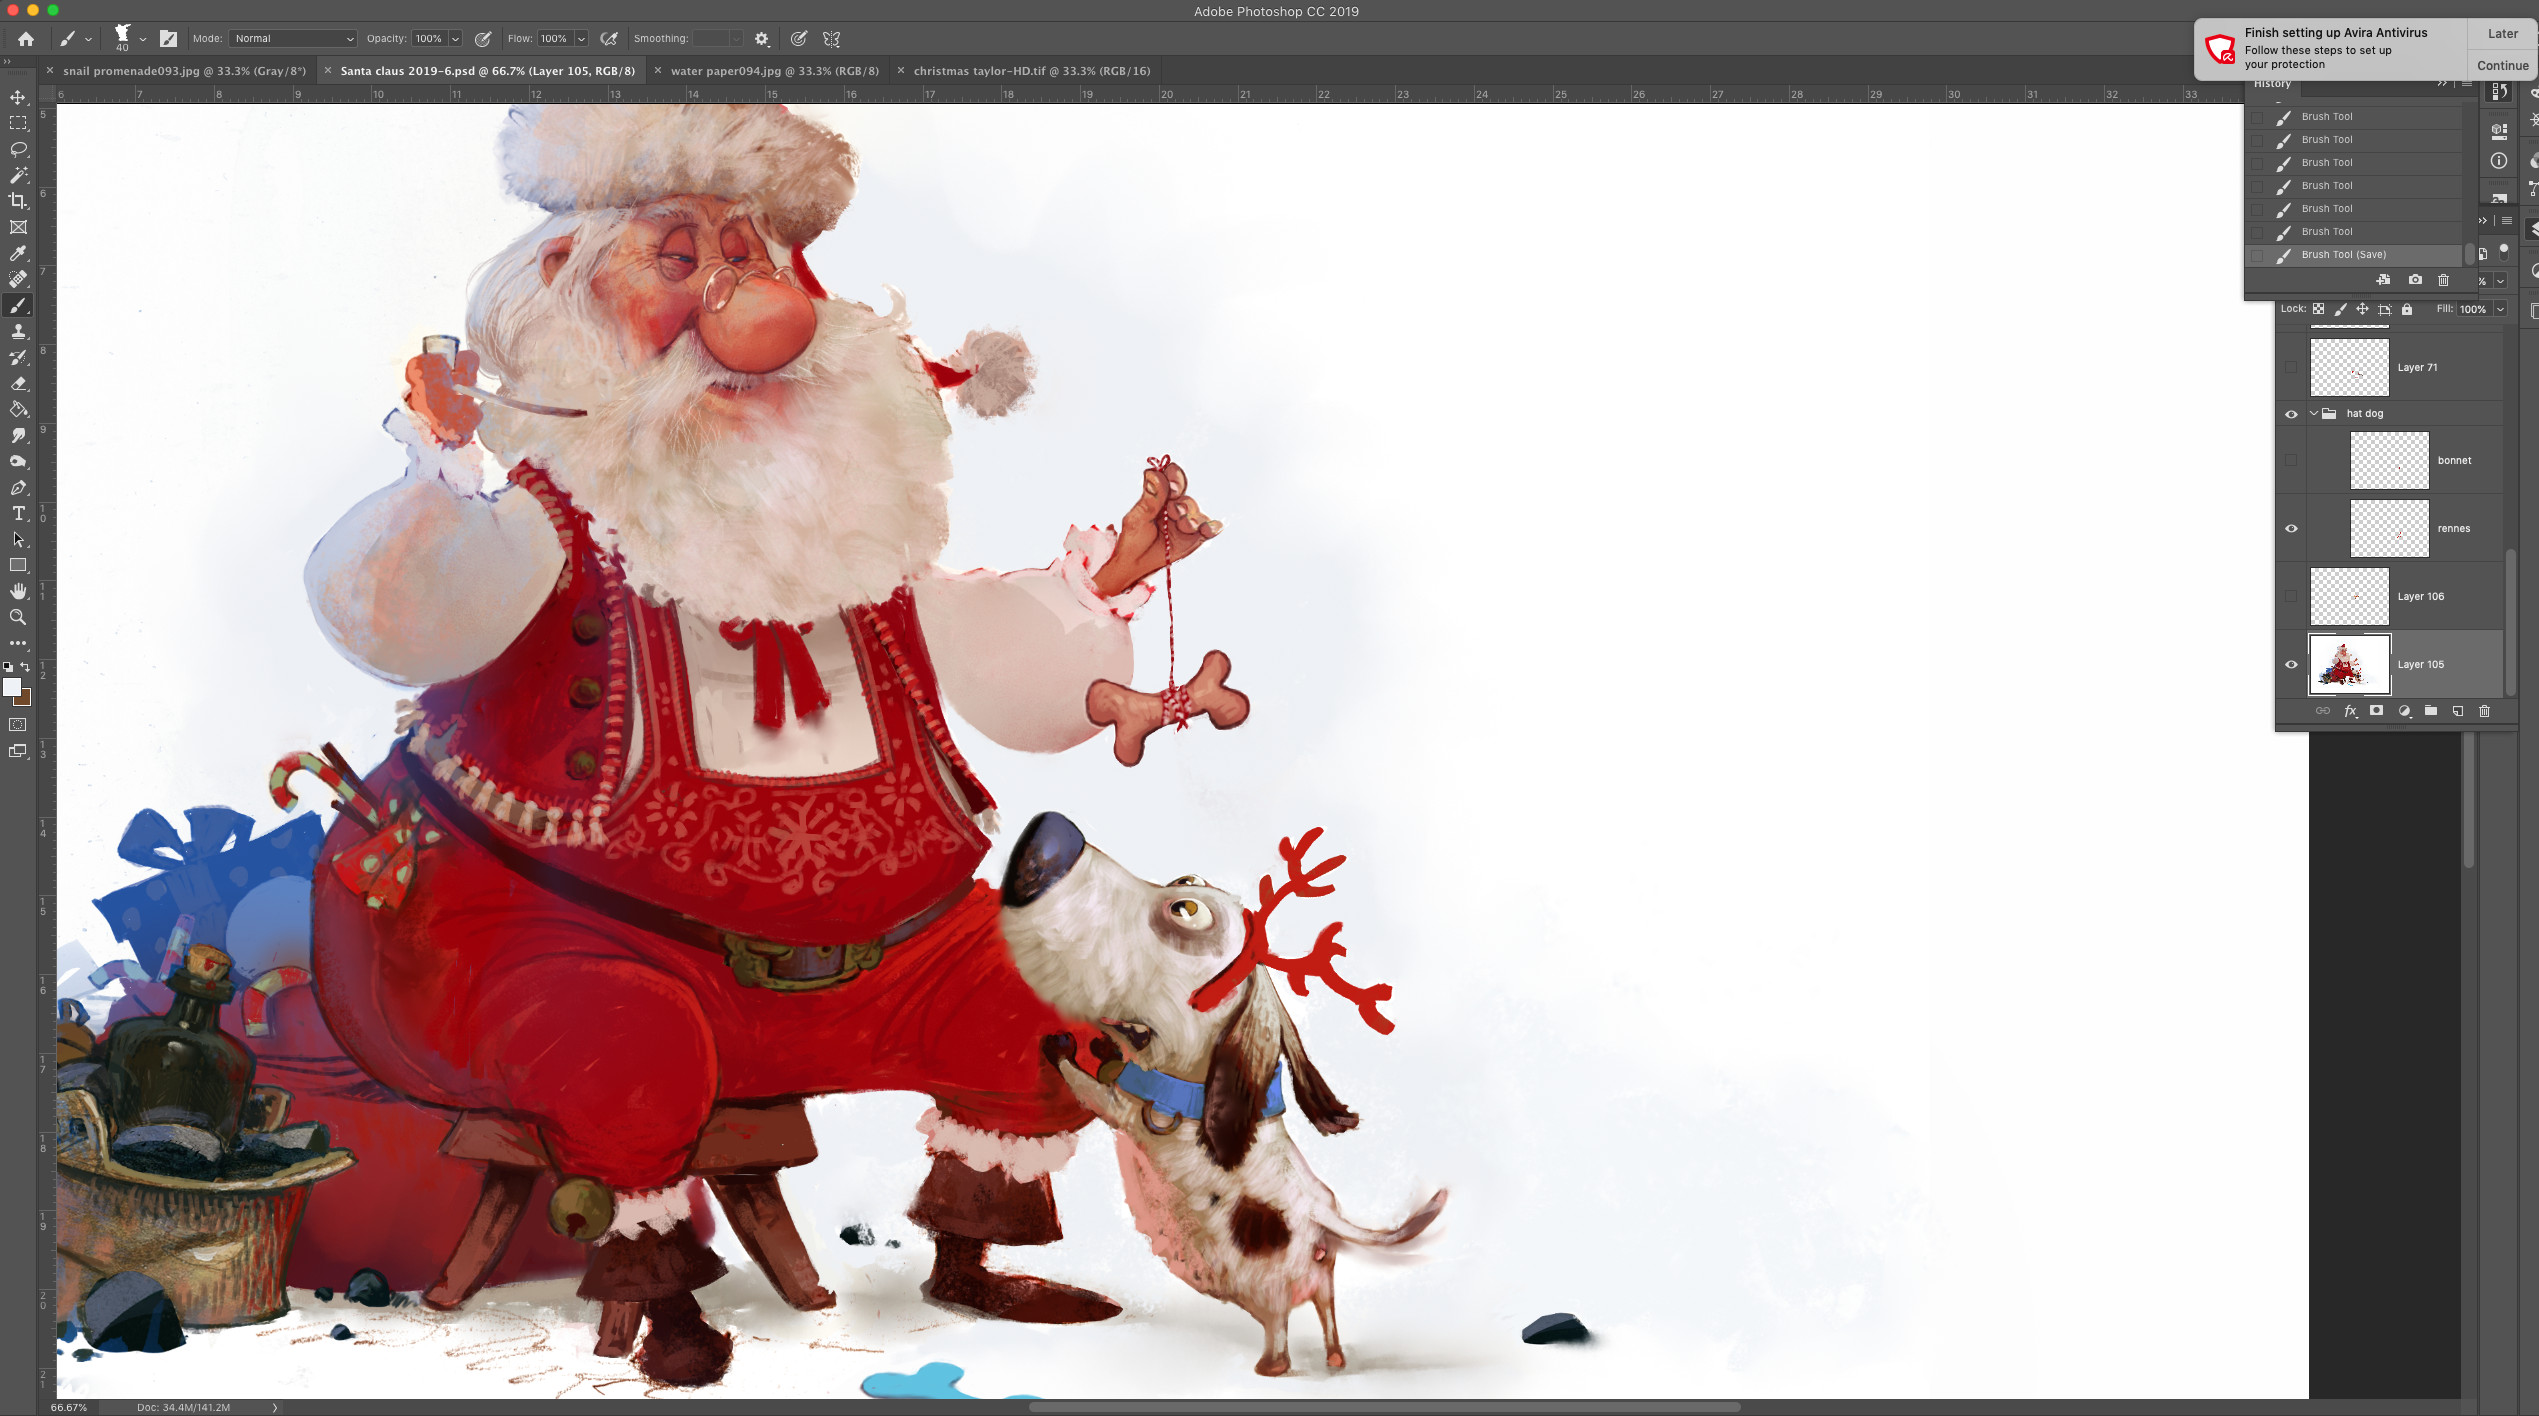 Adding details like the bucket and the presents!